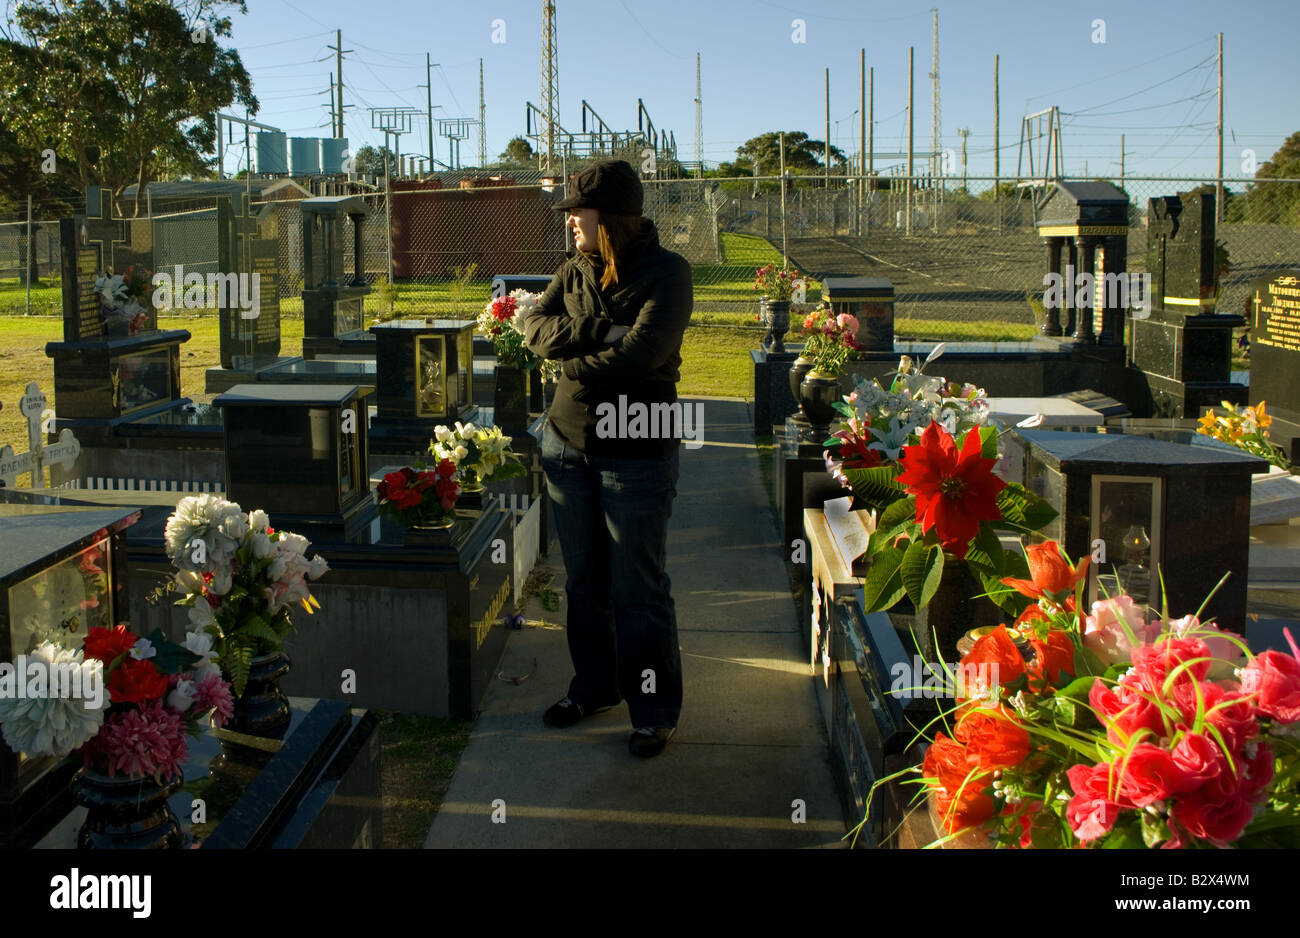 A woman walks through graves backed by powerlines. Stock Photo